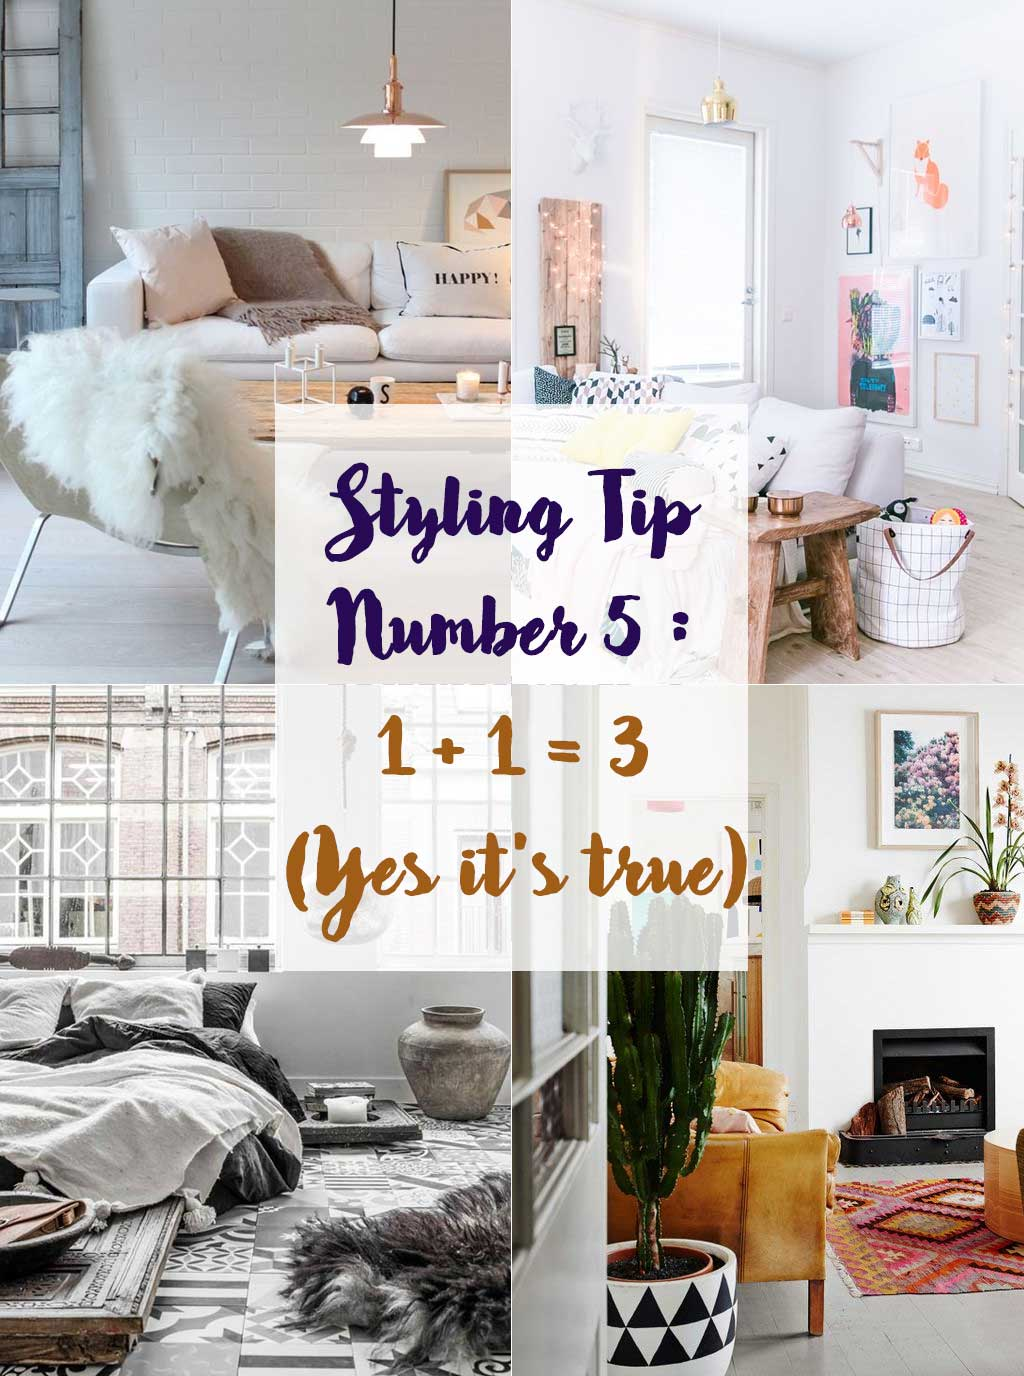 Styling Tip Number 5 - 1 plus 1 equals 3 - Interior Design - Hutsly